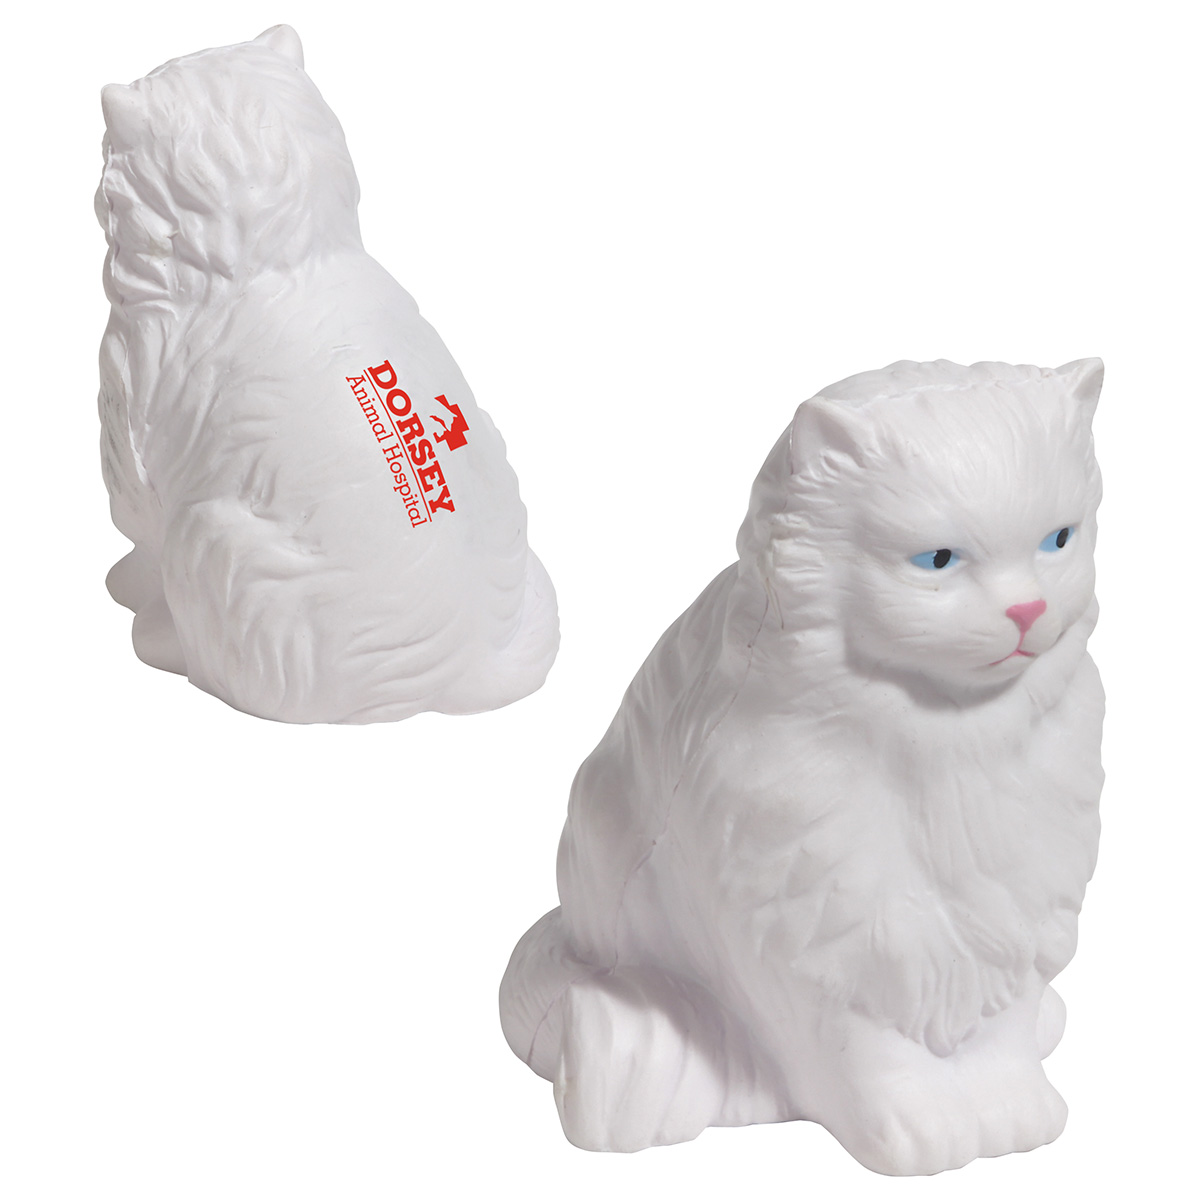 Persian Cat Stress Reliever, LPE-PC34, 1 Colour Imprint